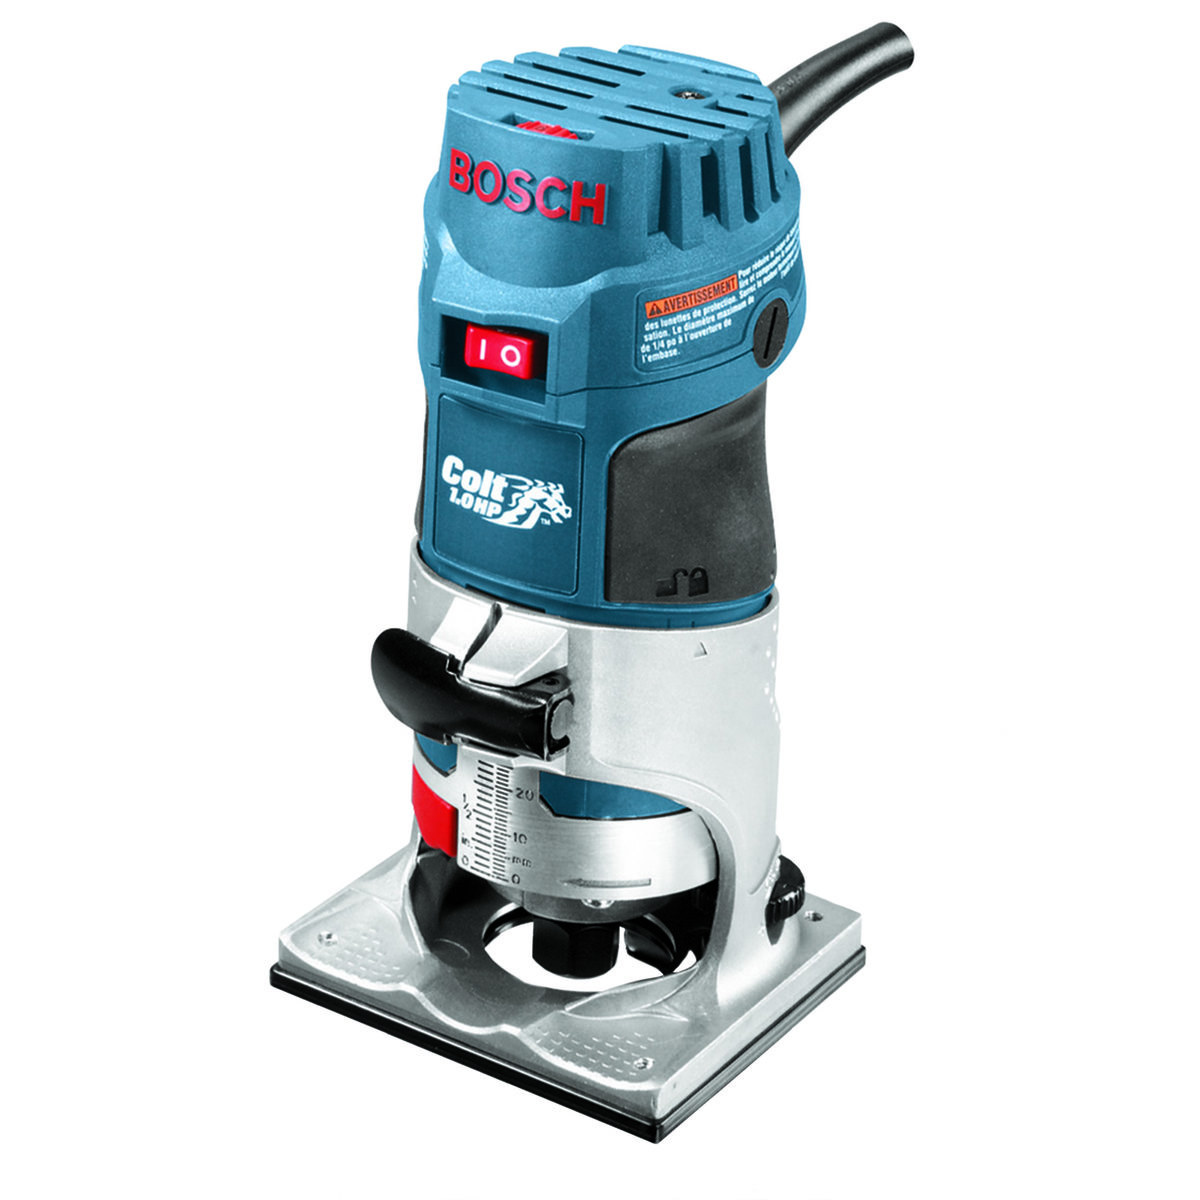 Toolstoday Bosch Colt Wood Router